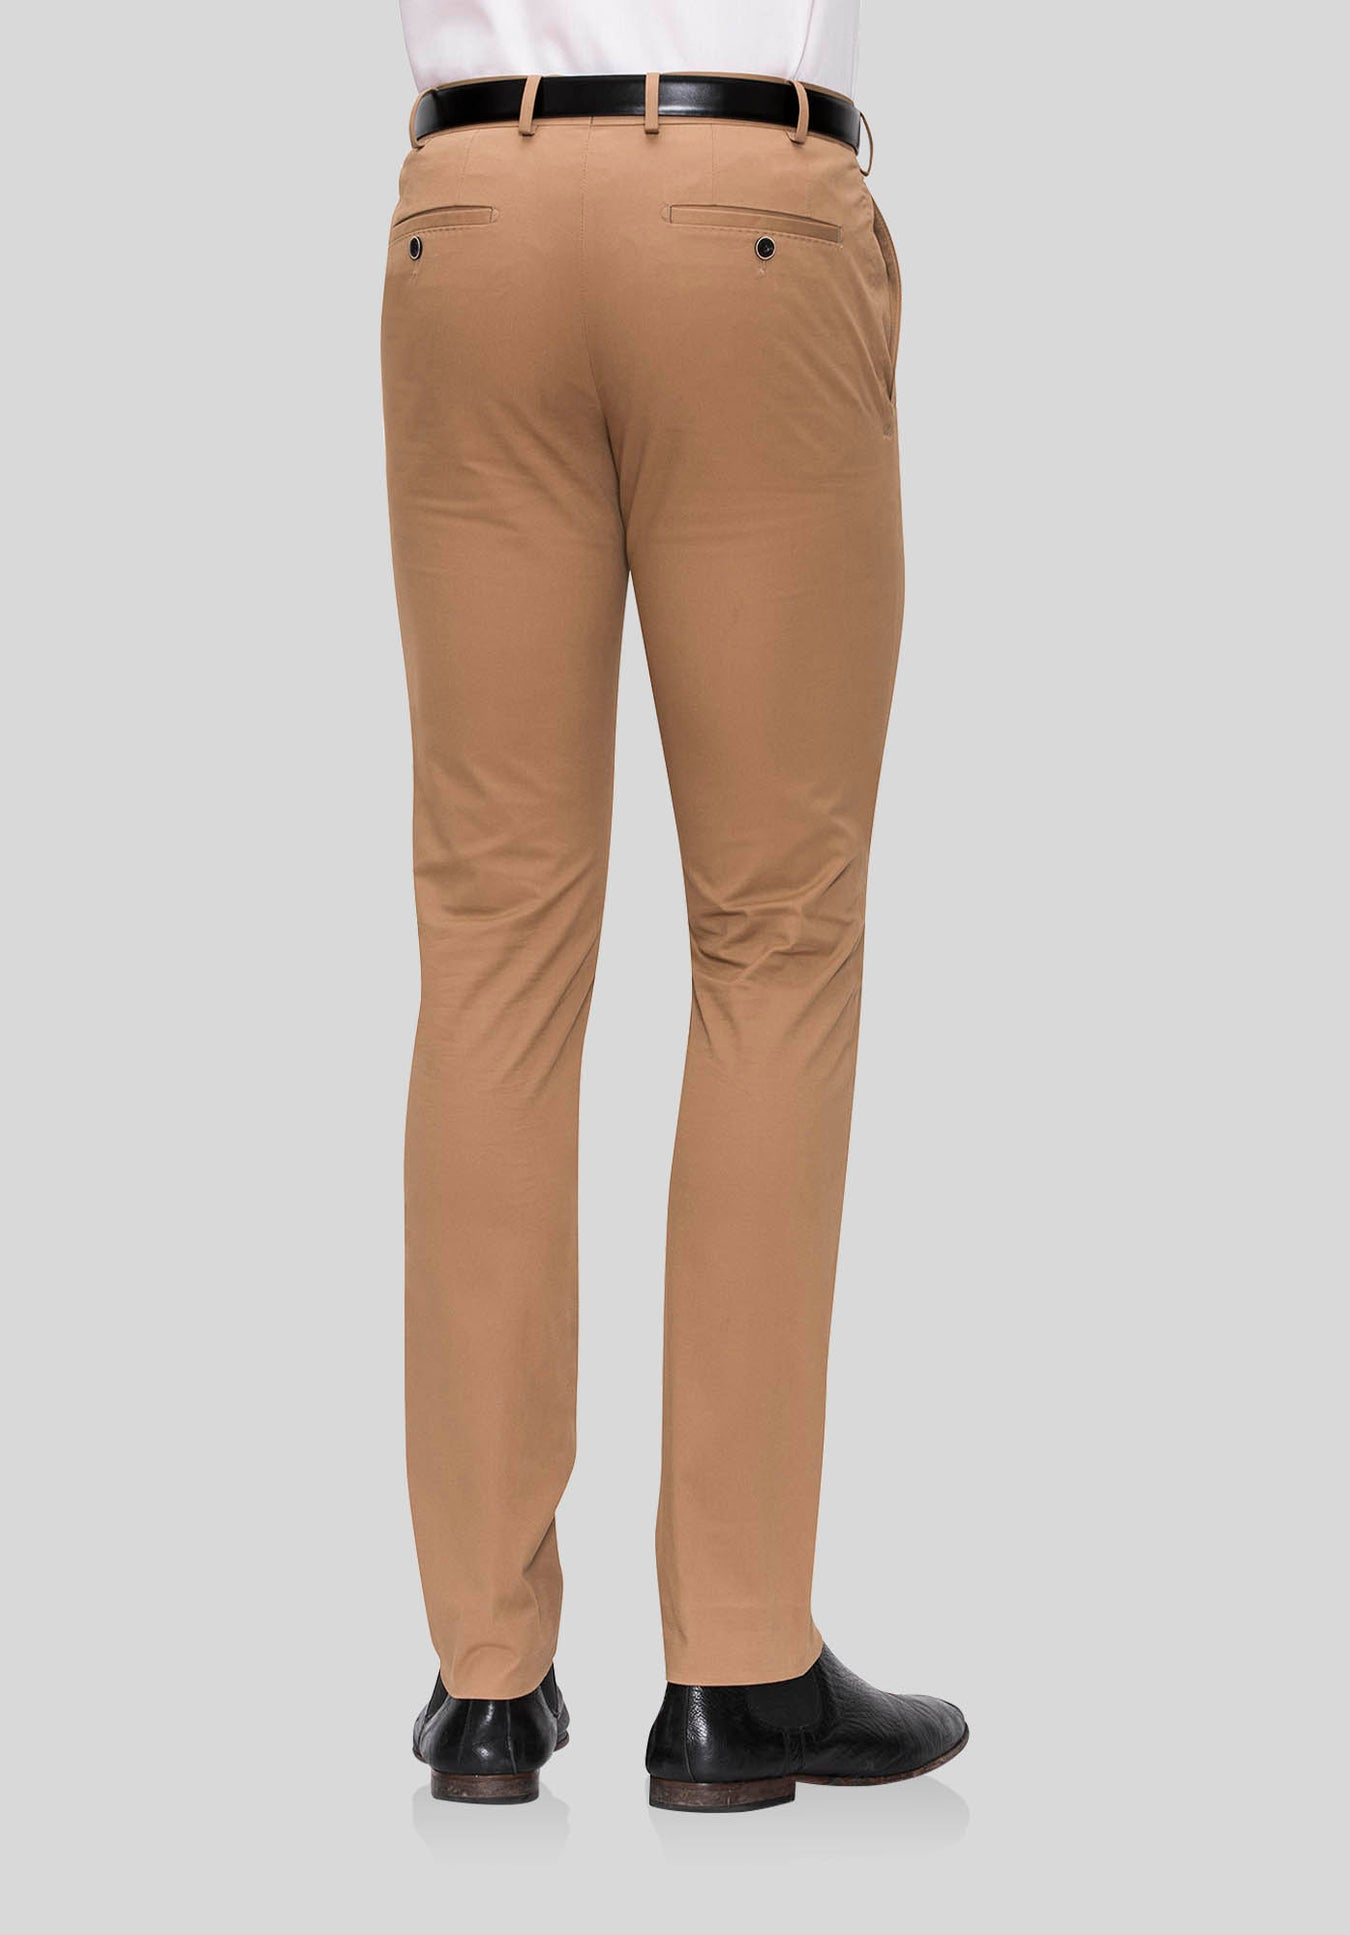 BEACON CHINO FJF975 - Toffee